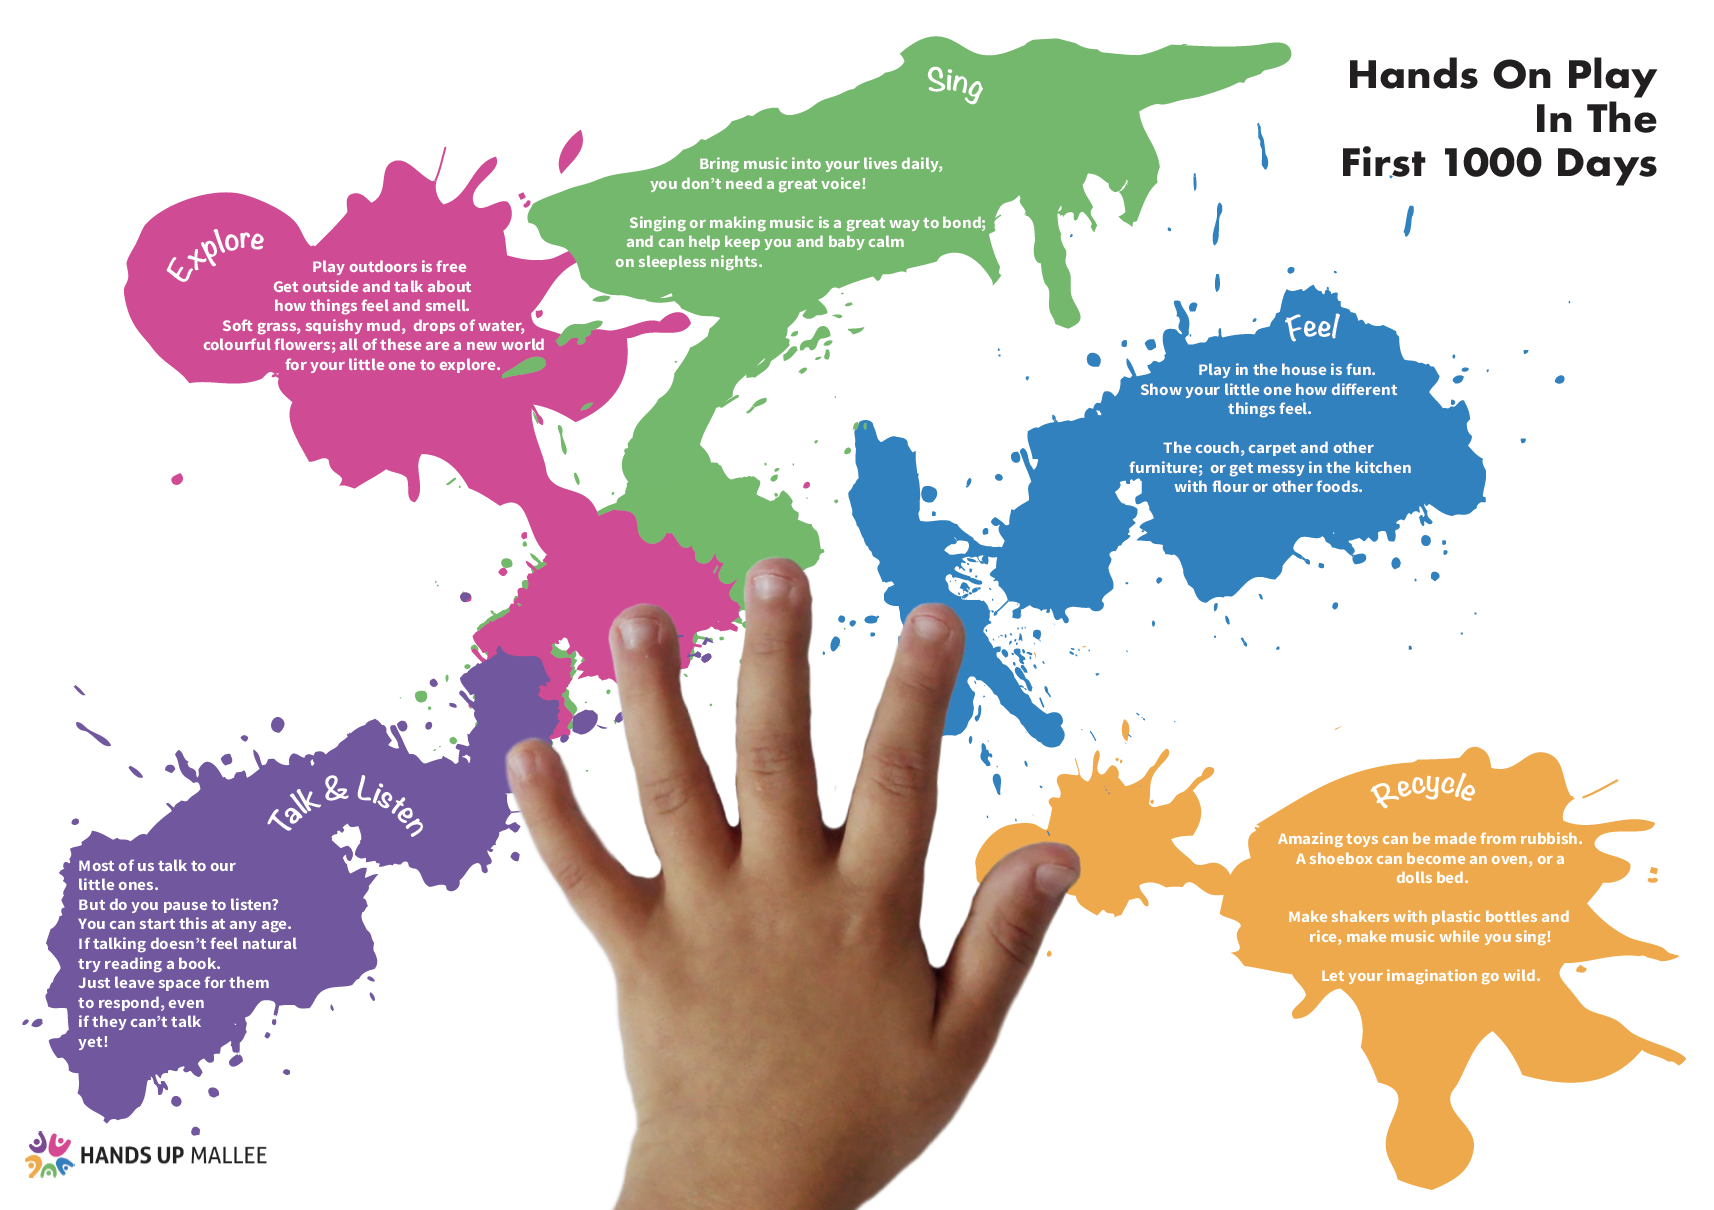 Hands on play in the First 1000 Days infographic